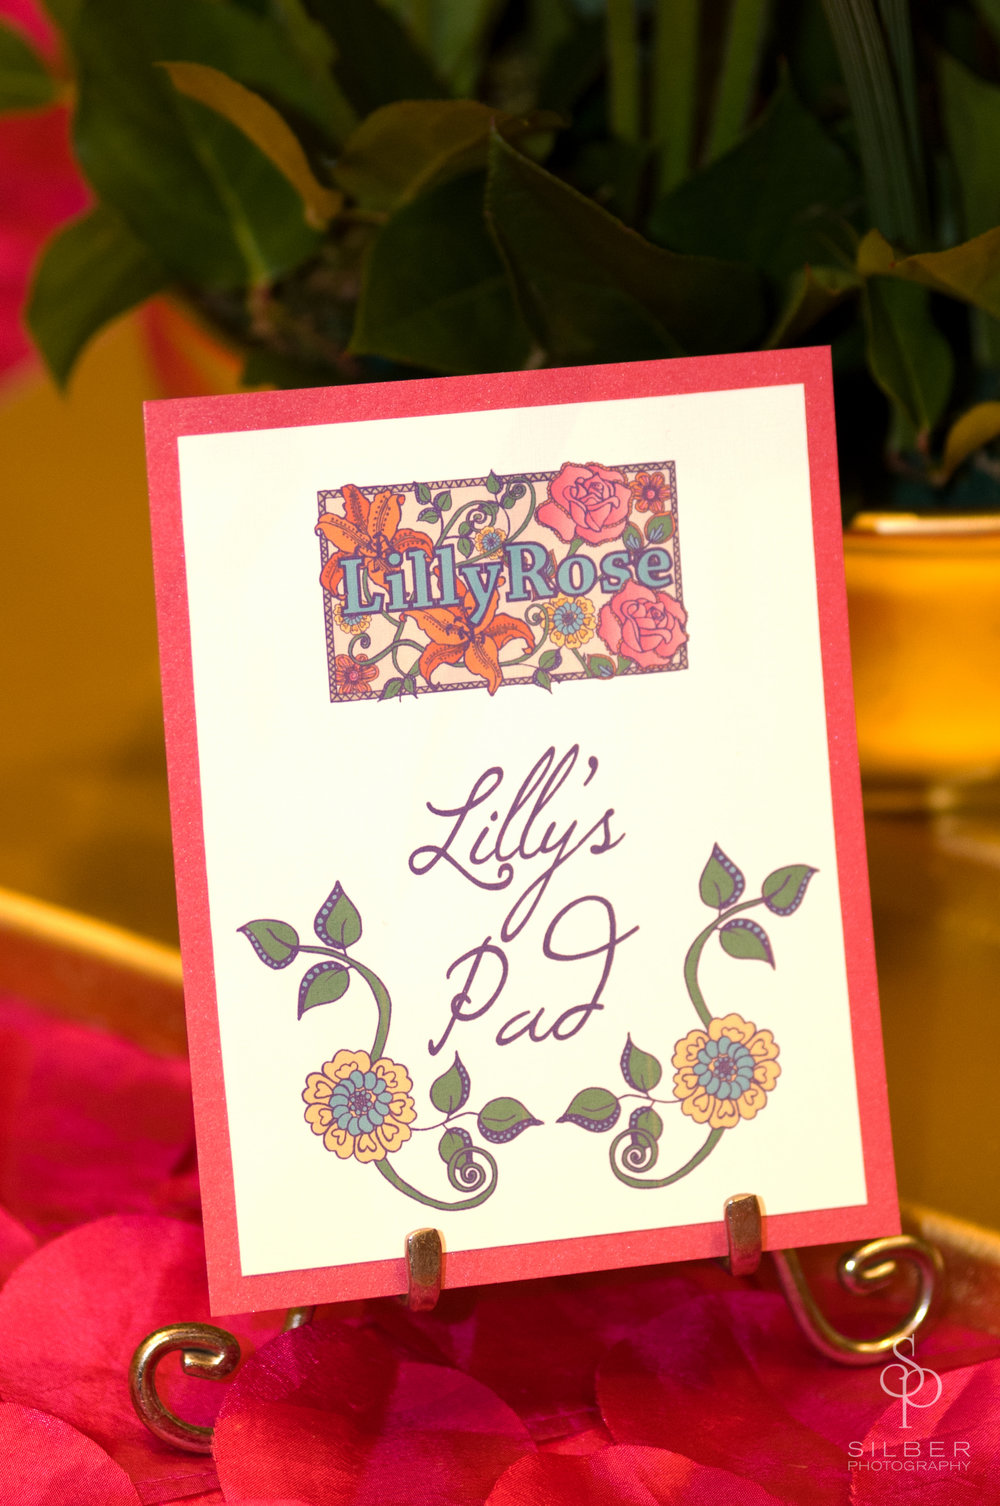 Lilly Rose | Table Names | Bat Mitzvah pink and orange monet garden theme decor by Innovative Party Planners at Four Seasons